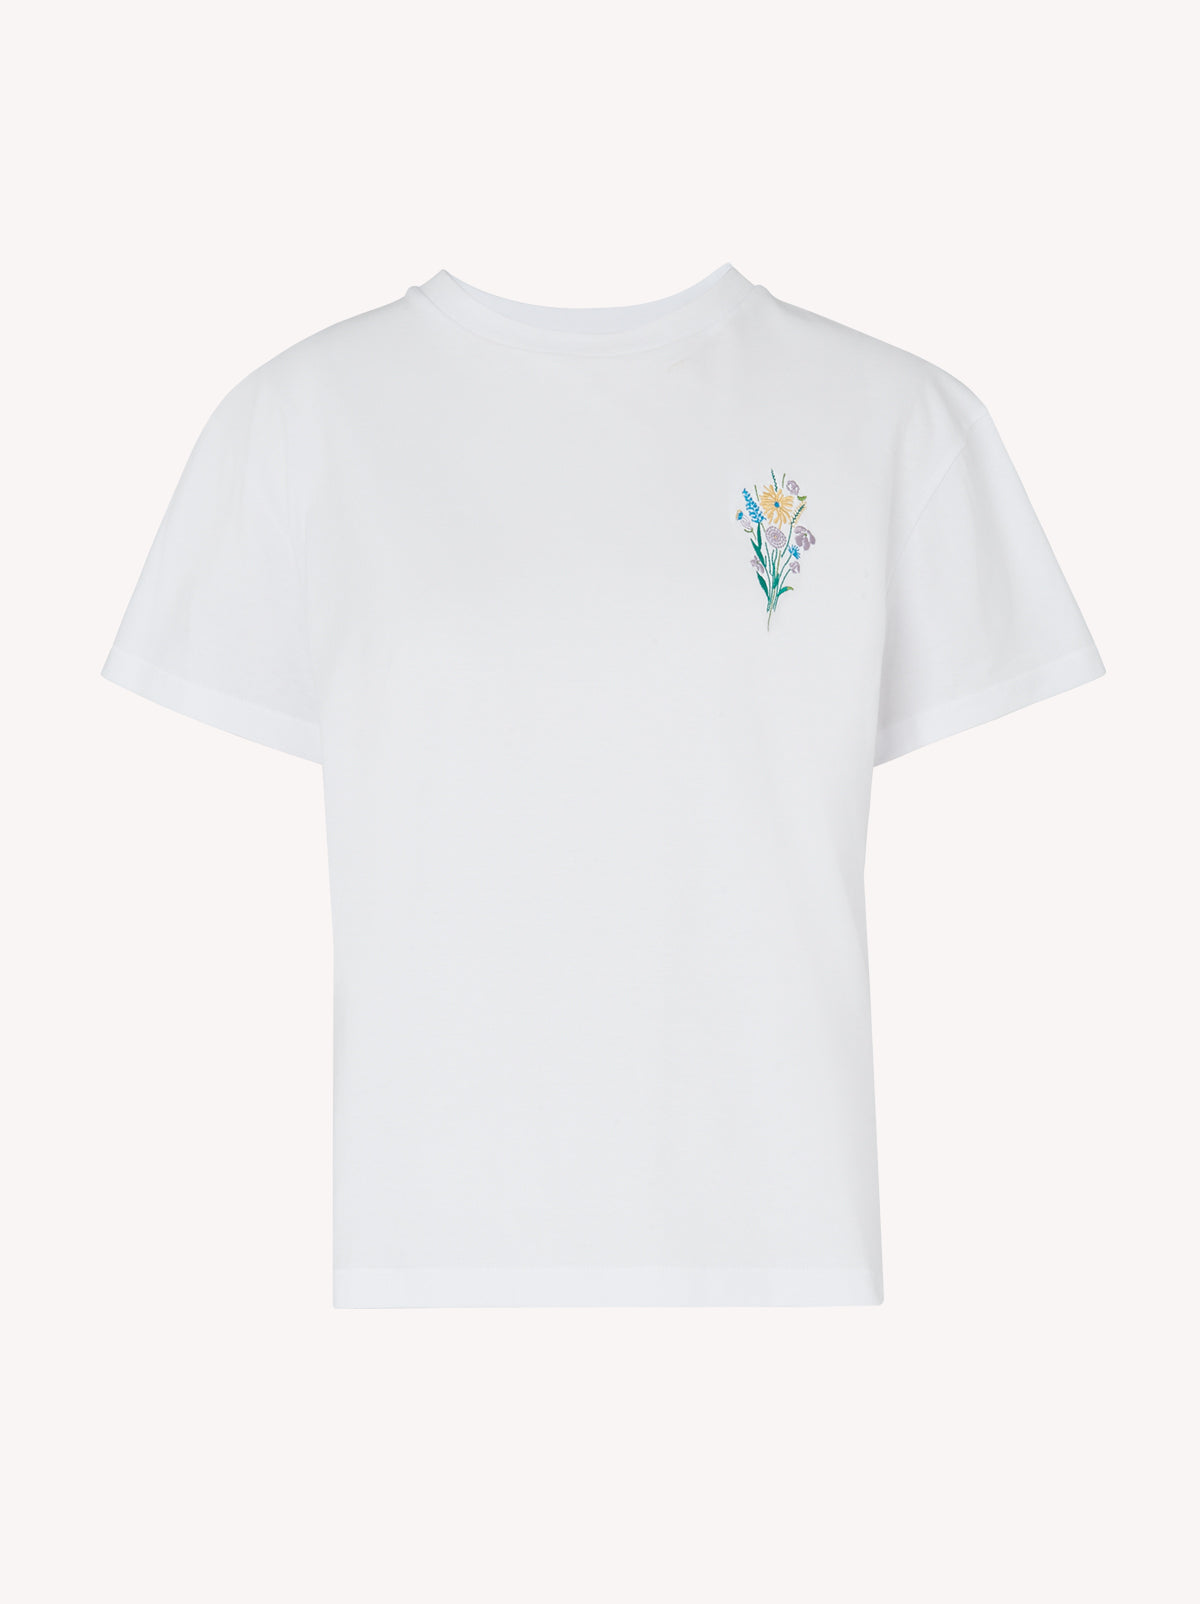 Flower White Cotton Embroidered T-shirt Mannequin by KITRI Studio.jpg